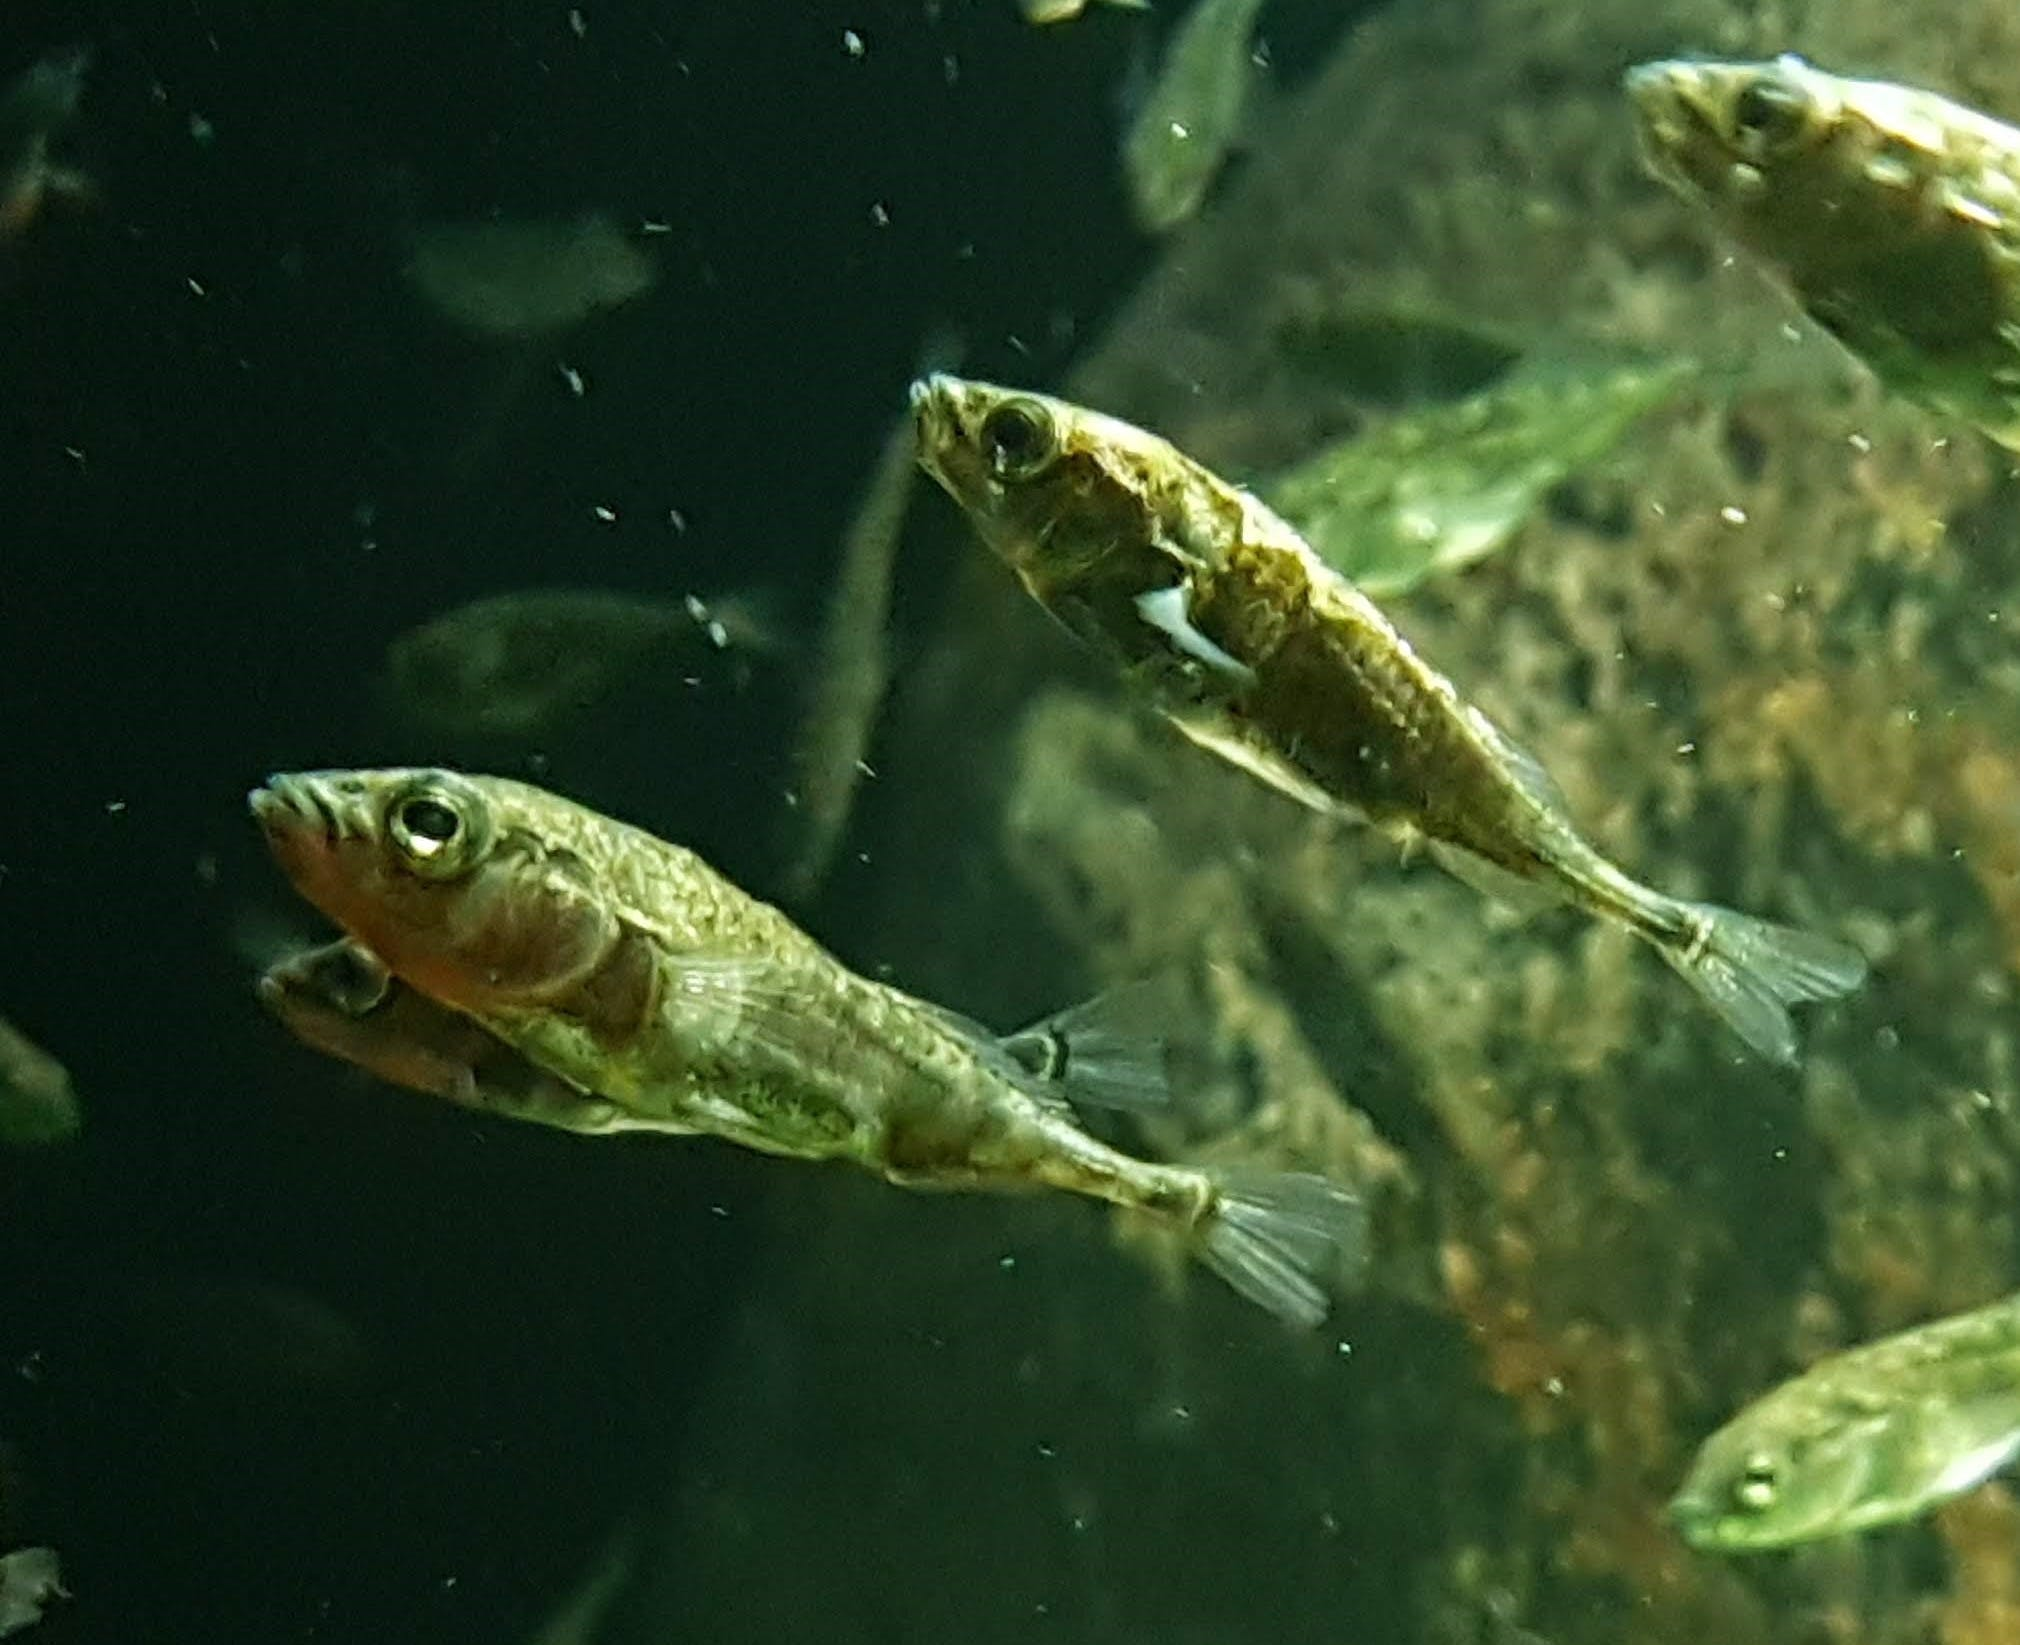 Three spined stickleback fish swimming